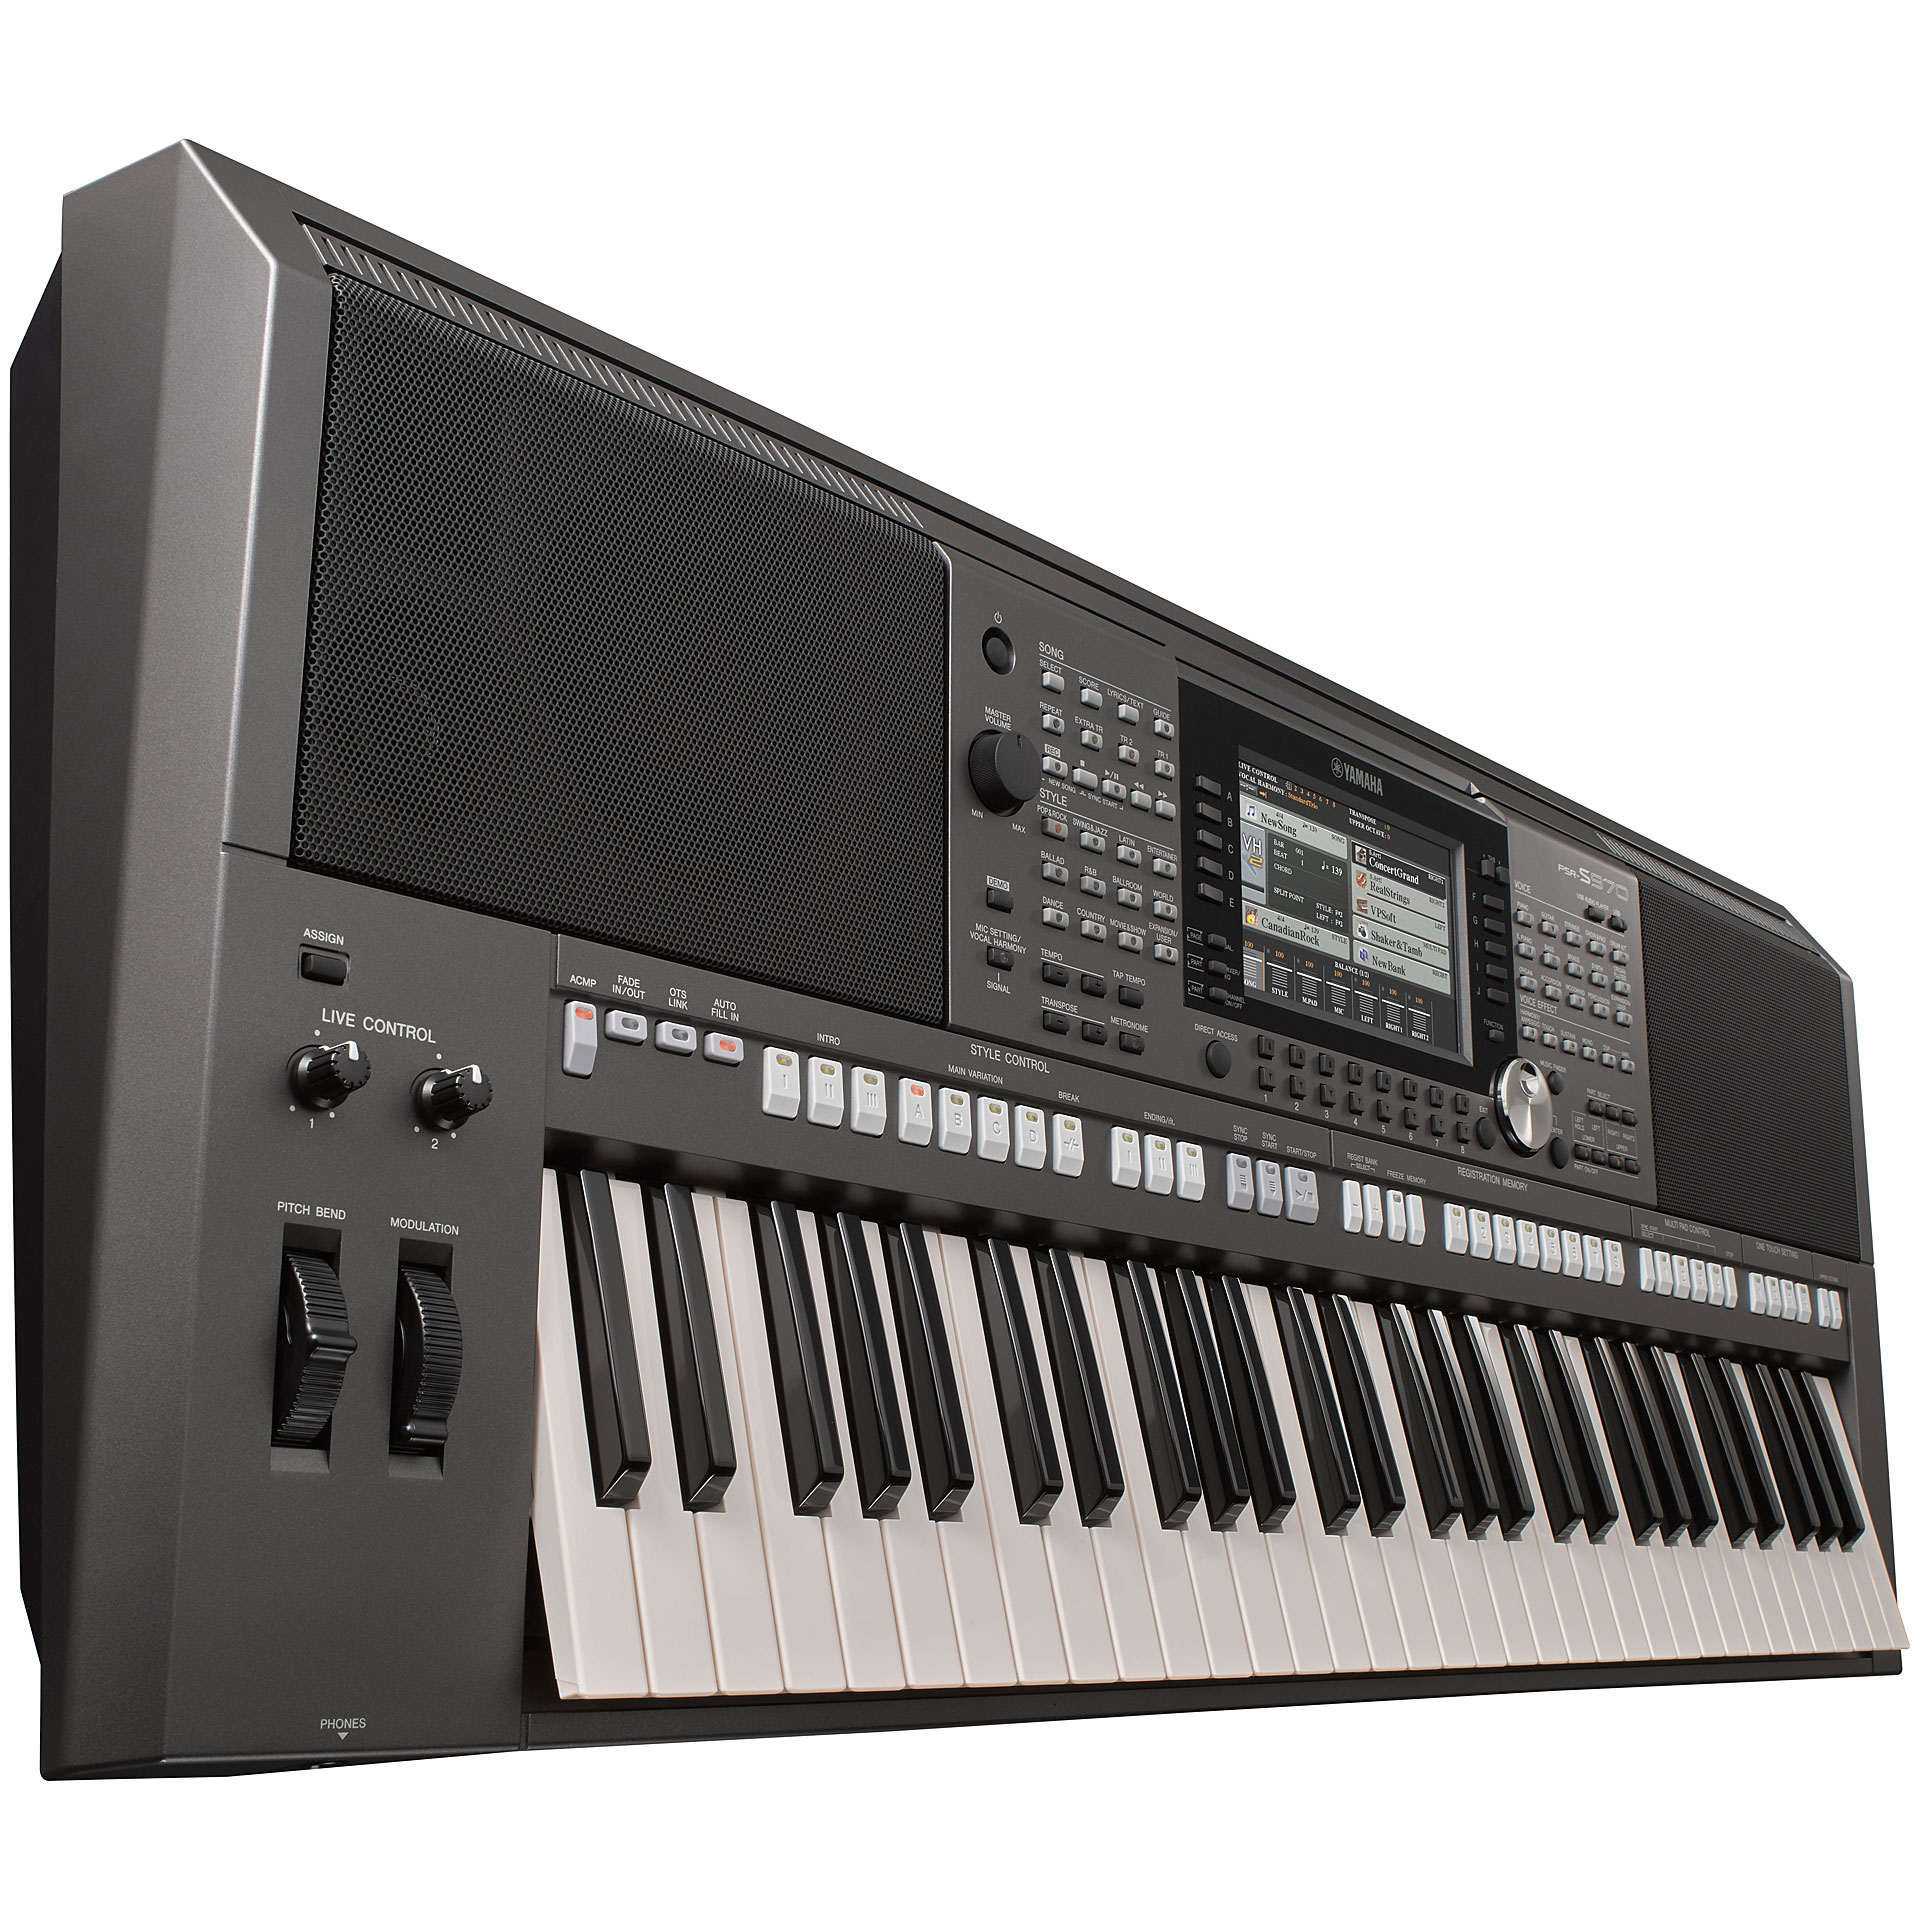 yamaha psr s970 synth tiseur. Black Bedroom Furniture Sets. Home Design Ideas